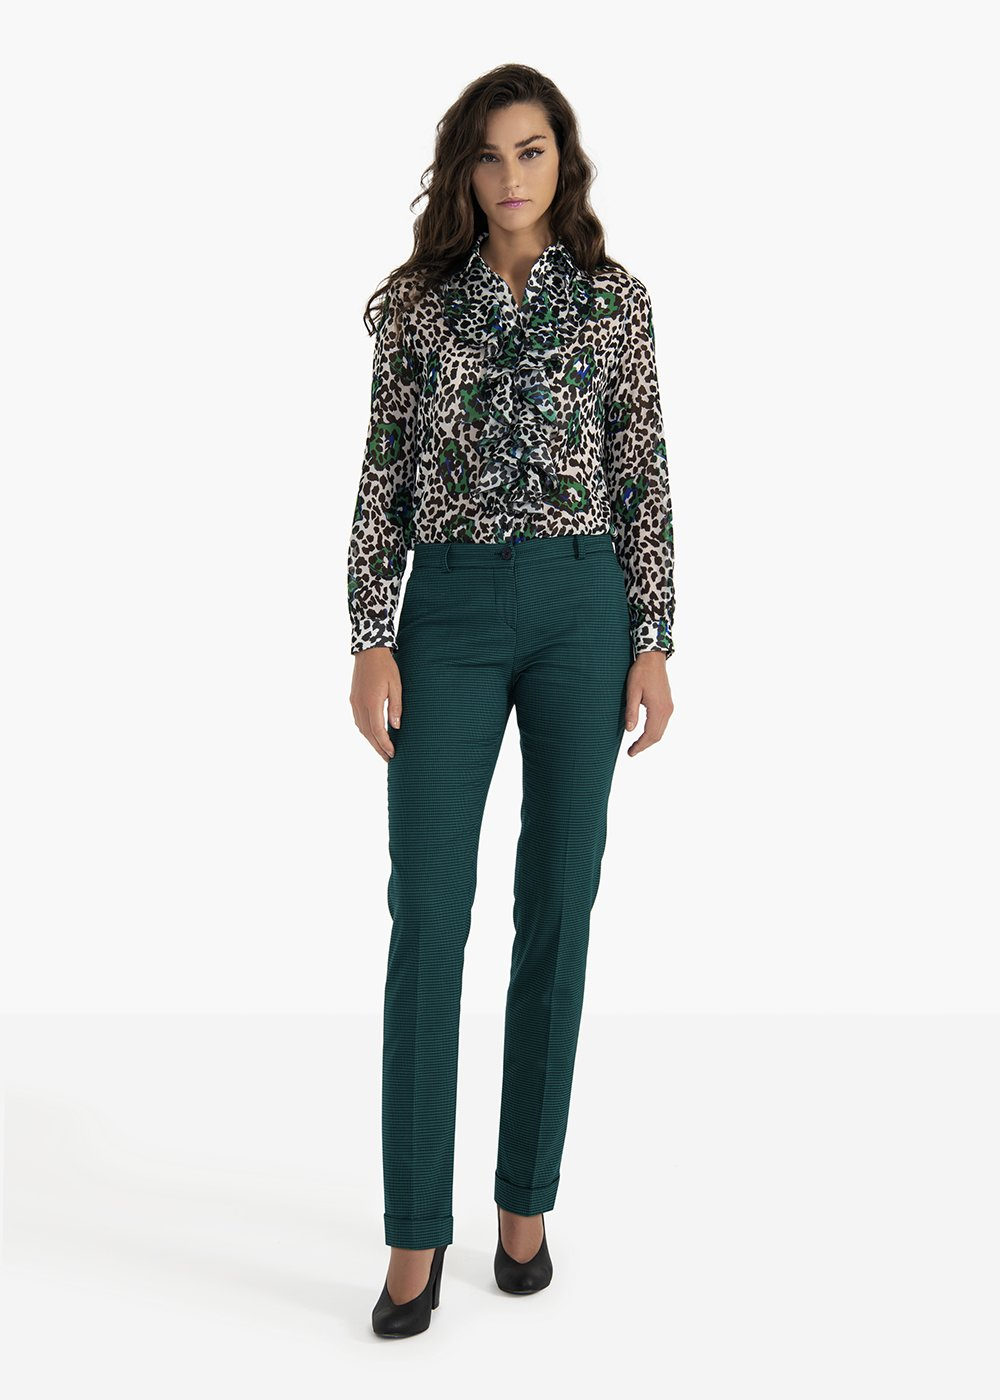 Bella trousers in poly-viscose fabric with micro pied de poule pattern - Amazon  / Blue Fantasia - Woman